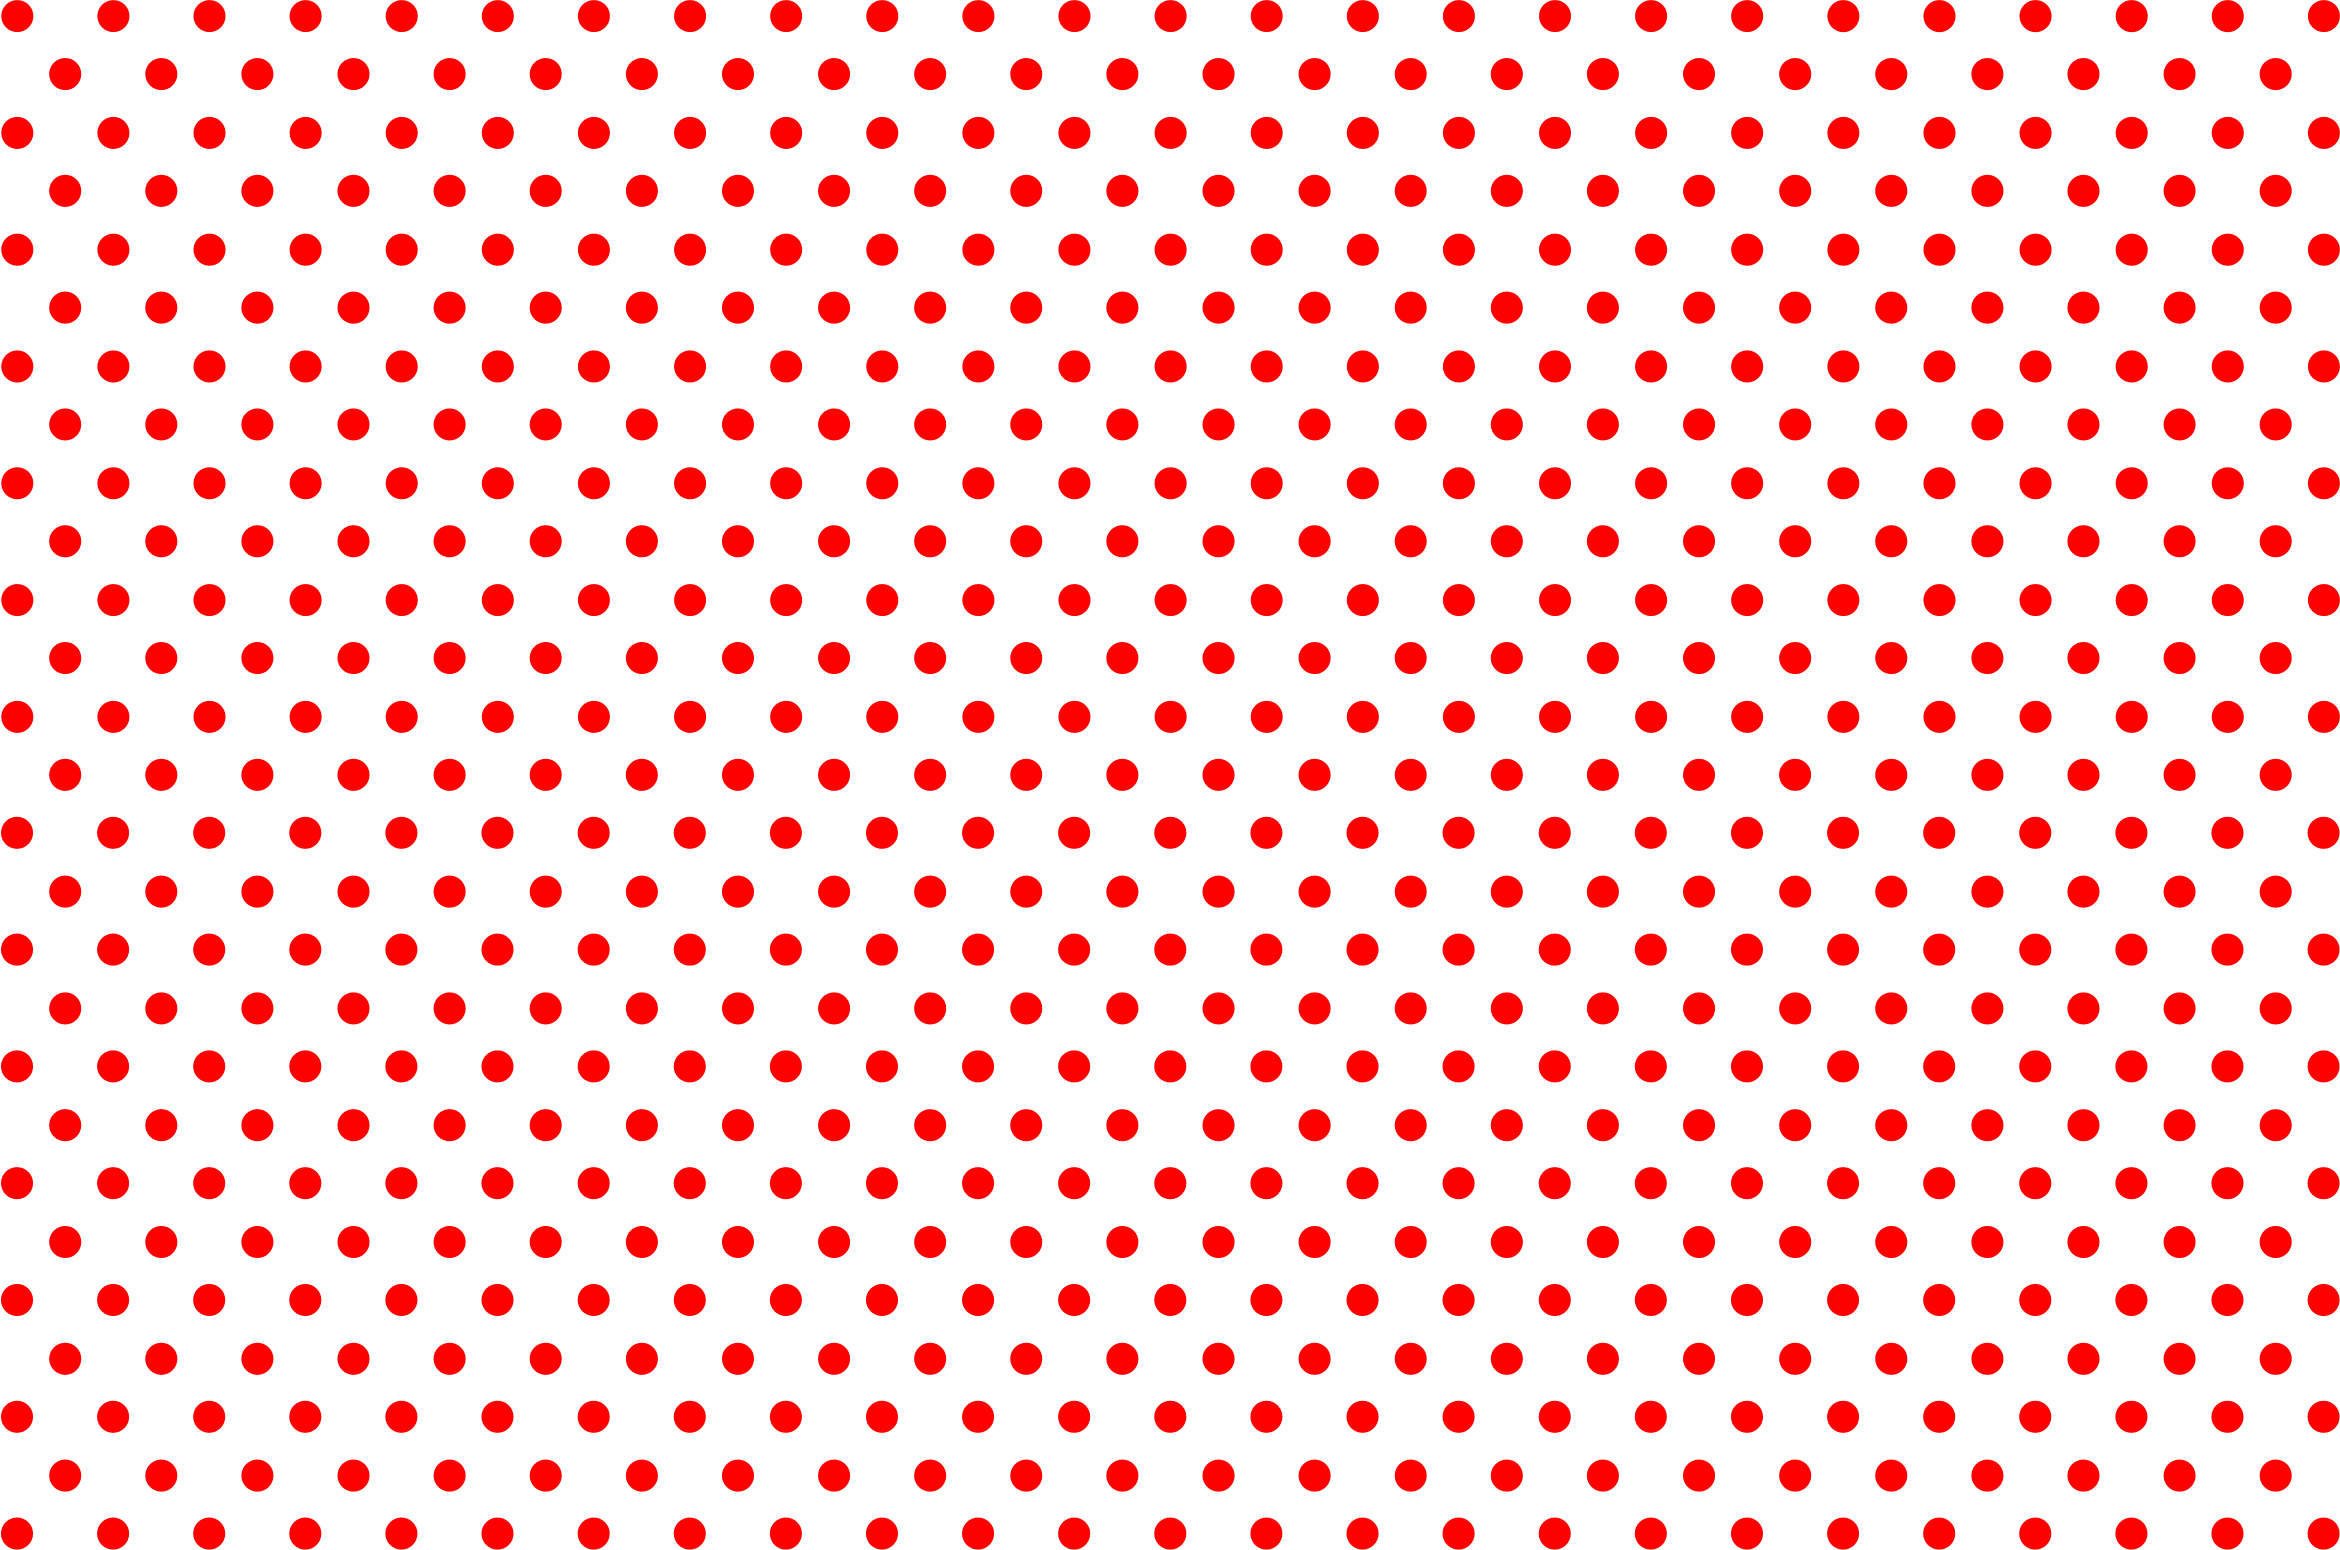 red polka dots png